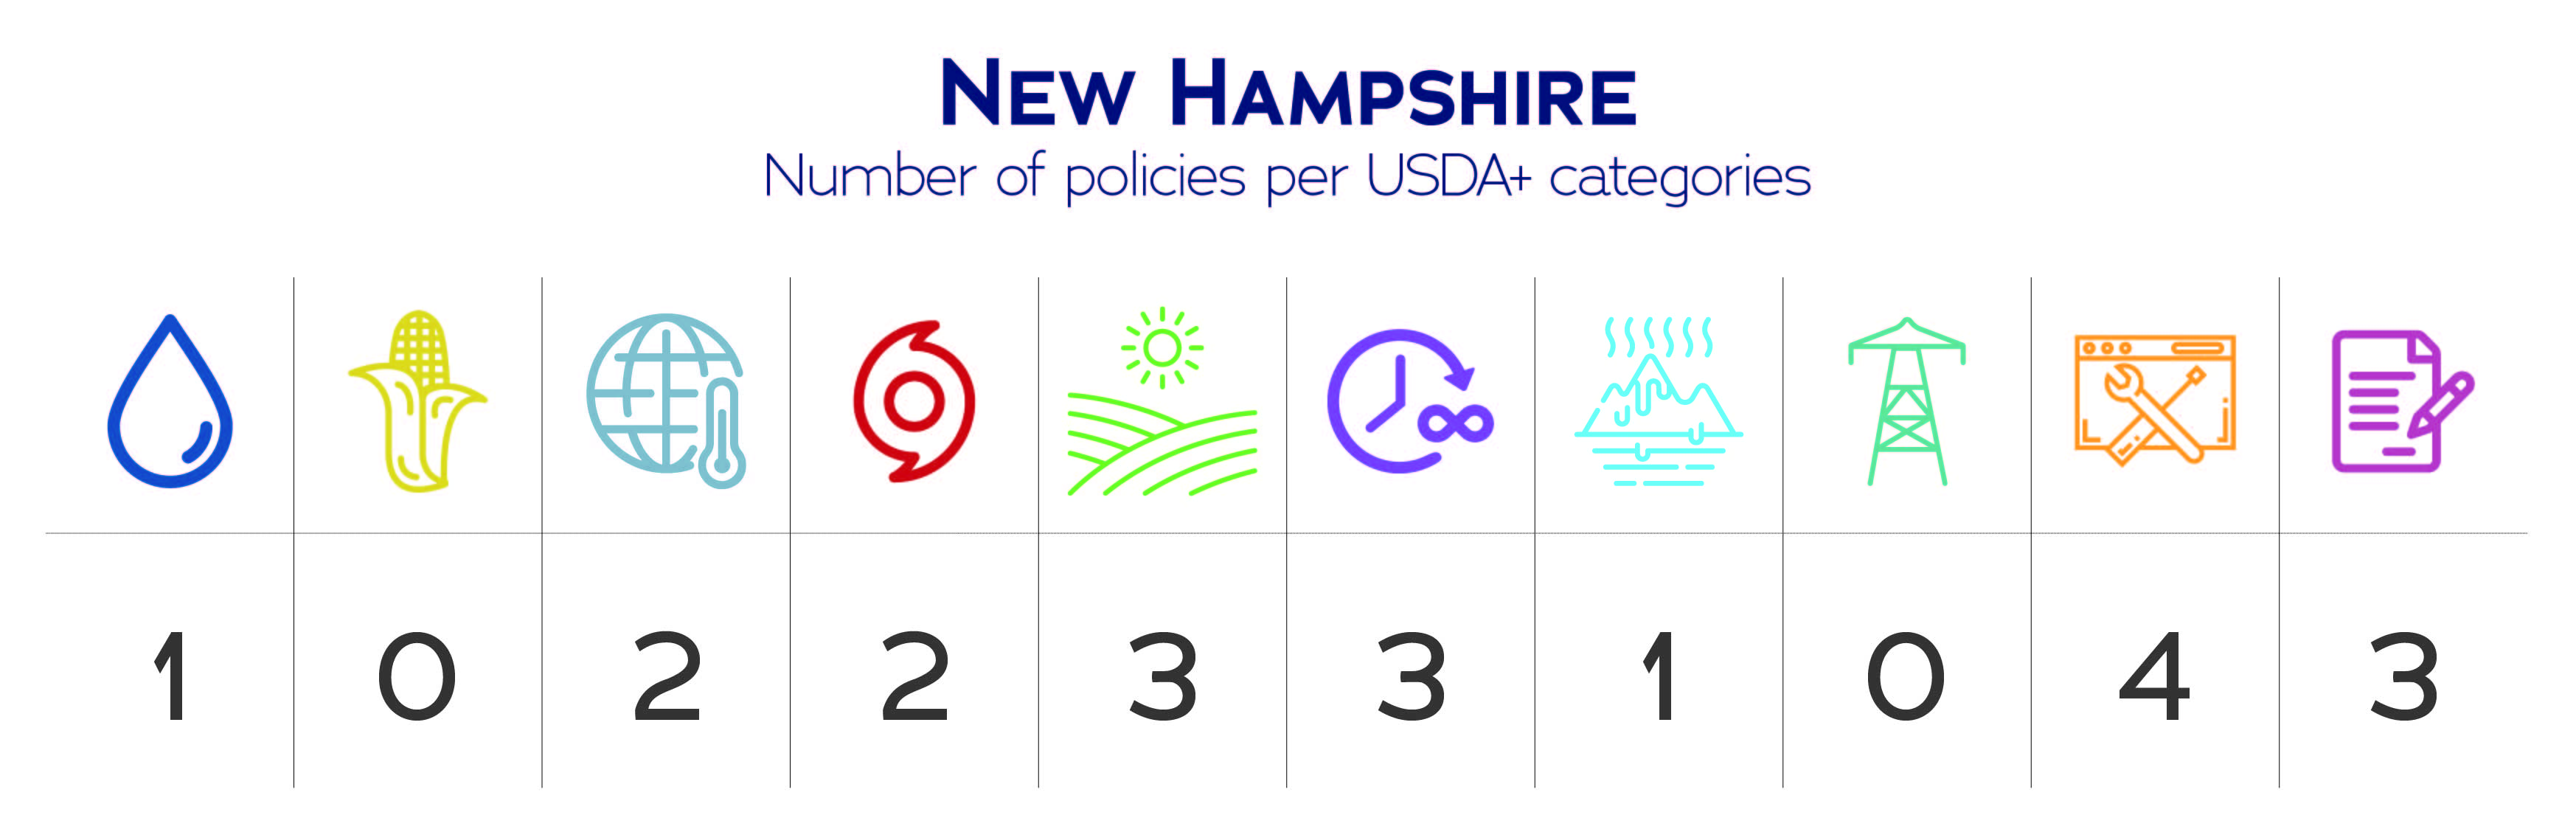 New Hampshire USDA+ category data